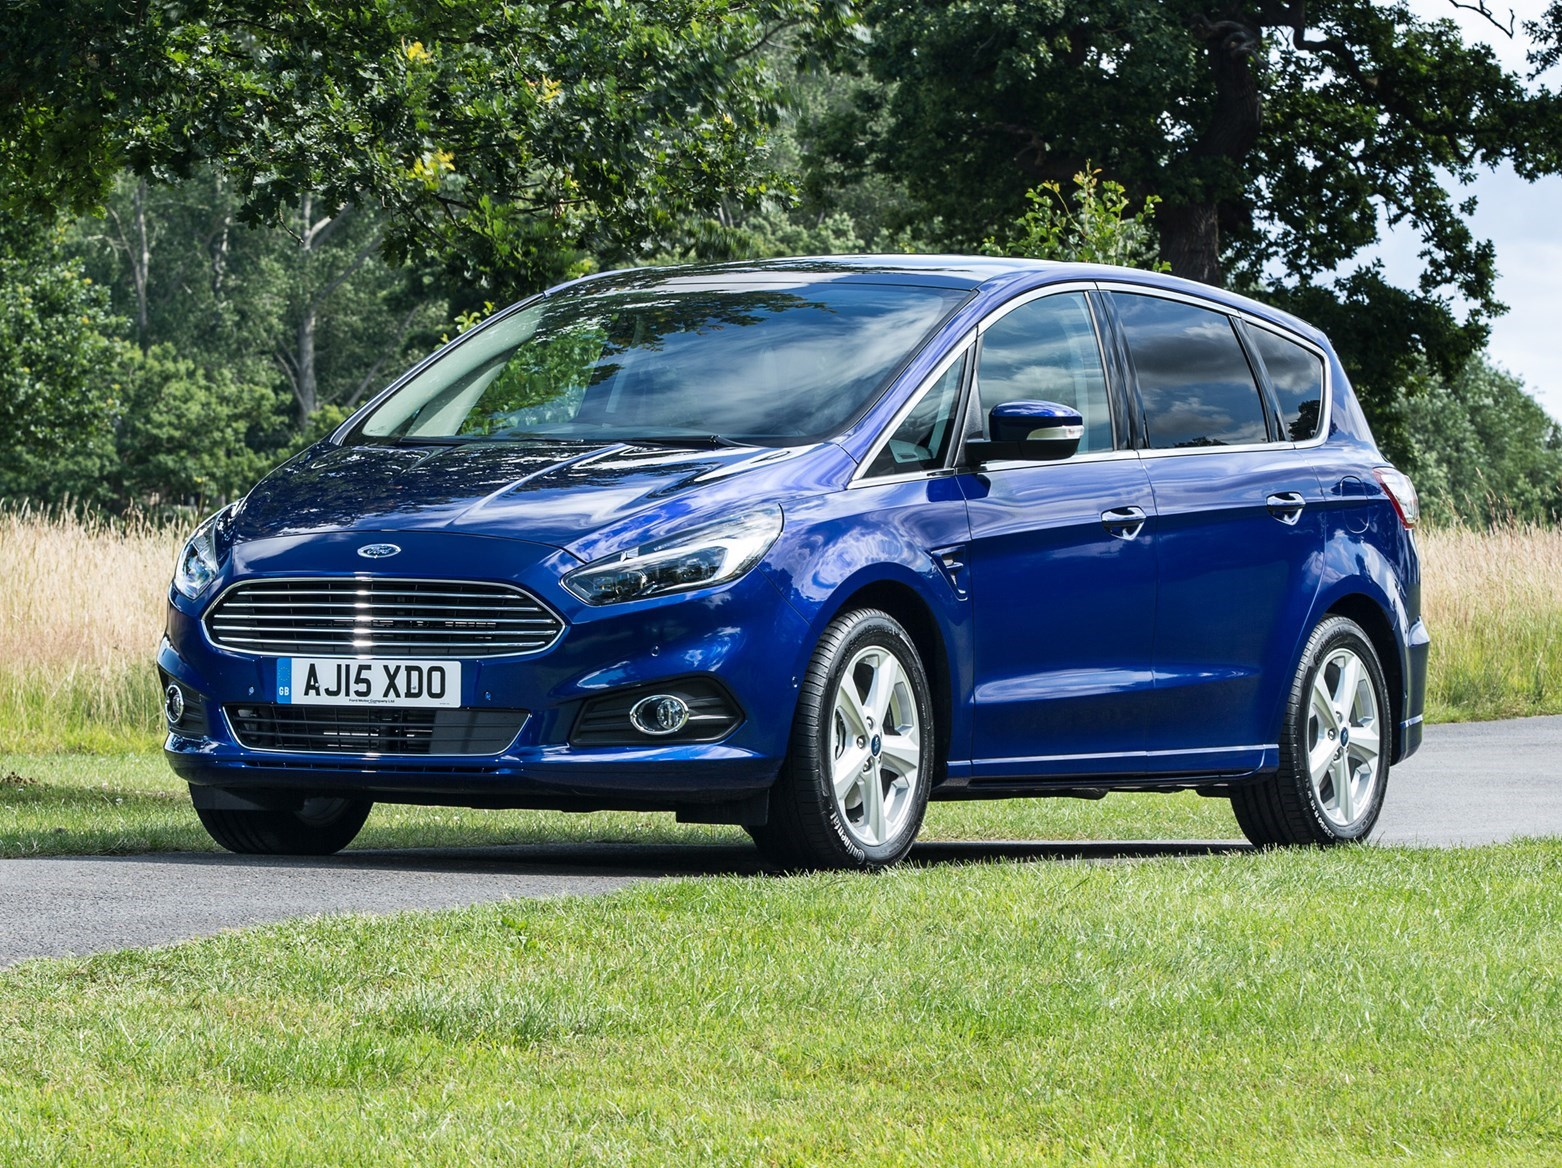 Ford S-Max - safest seven-seaters